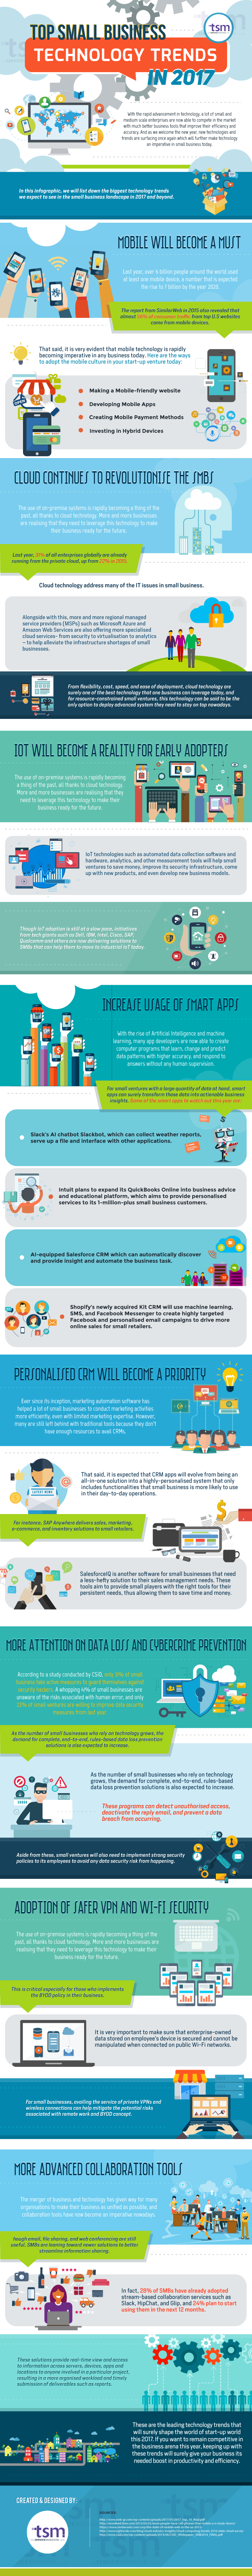 Top-Small-Business-Technology-Trends-in-2017-HD.png